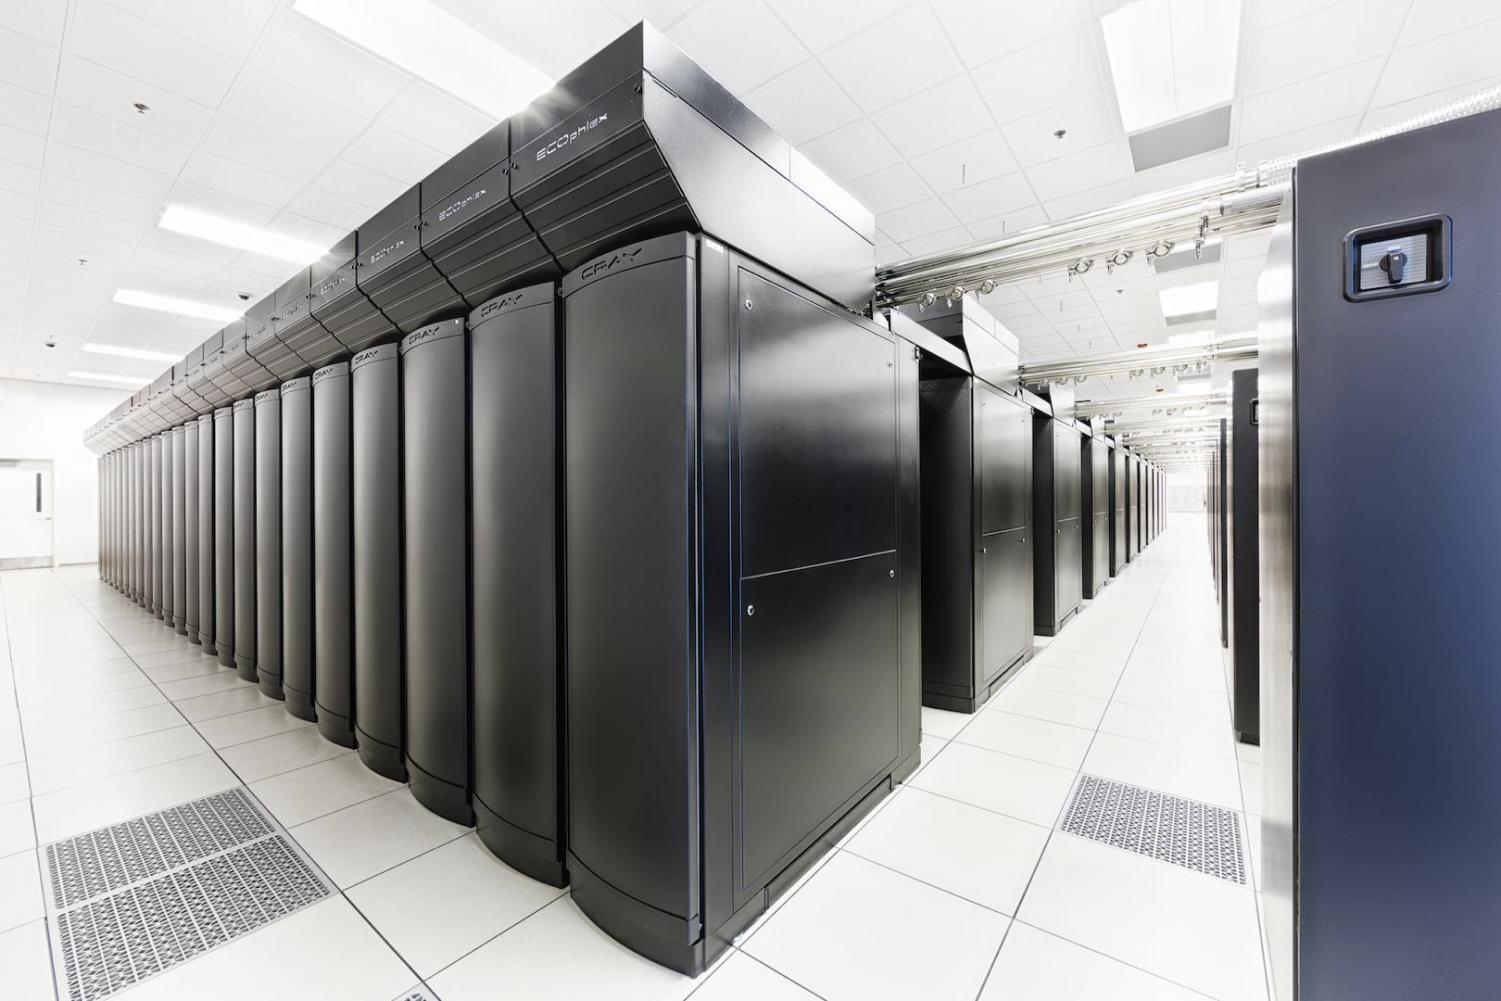 Blue Watersnsupercomputer was used to run the simulation of the black holes.